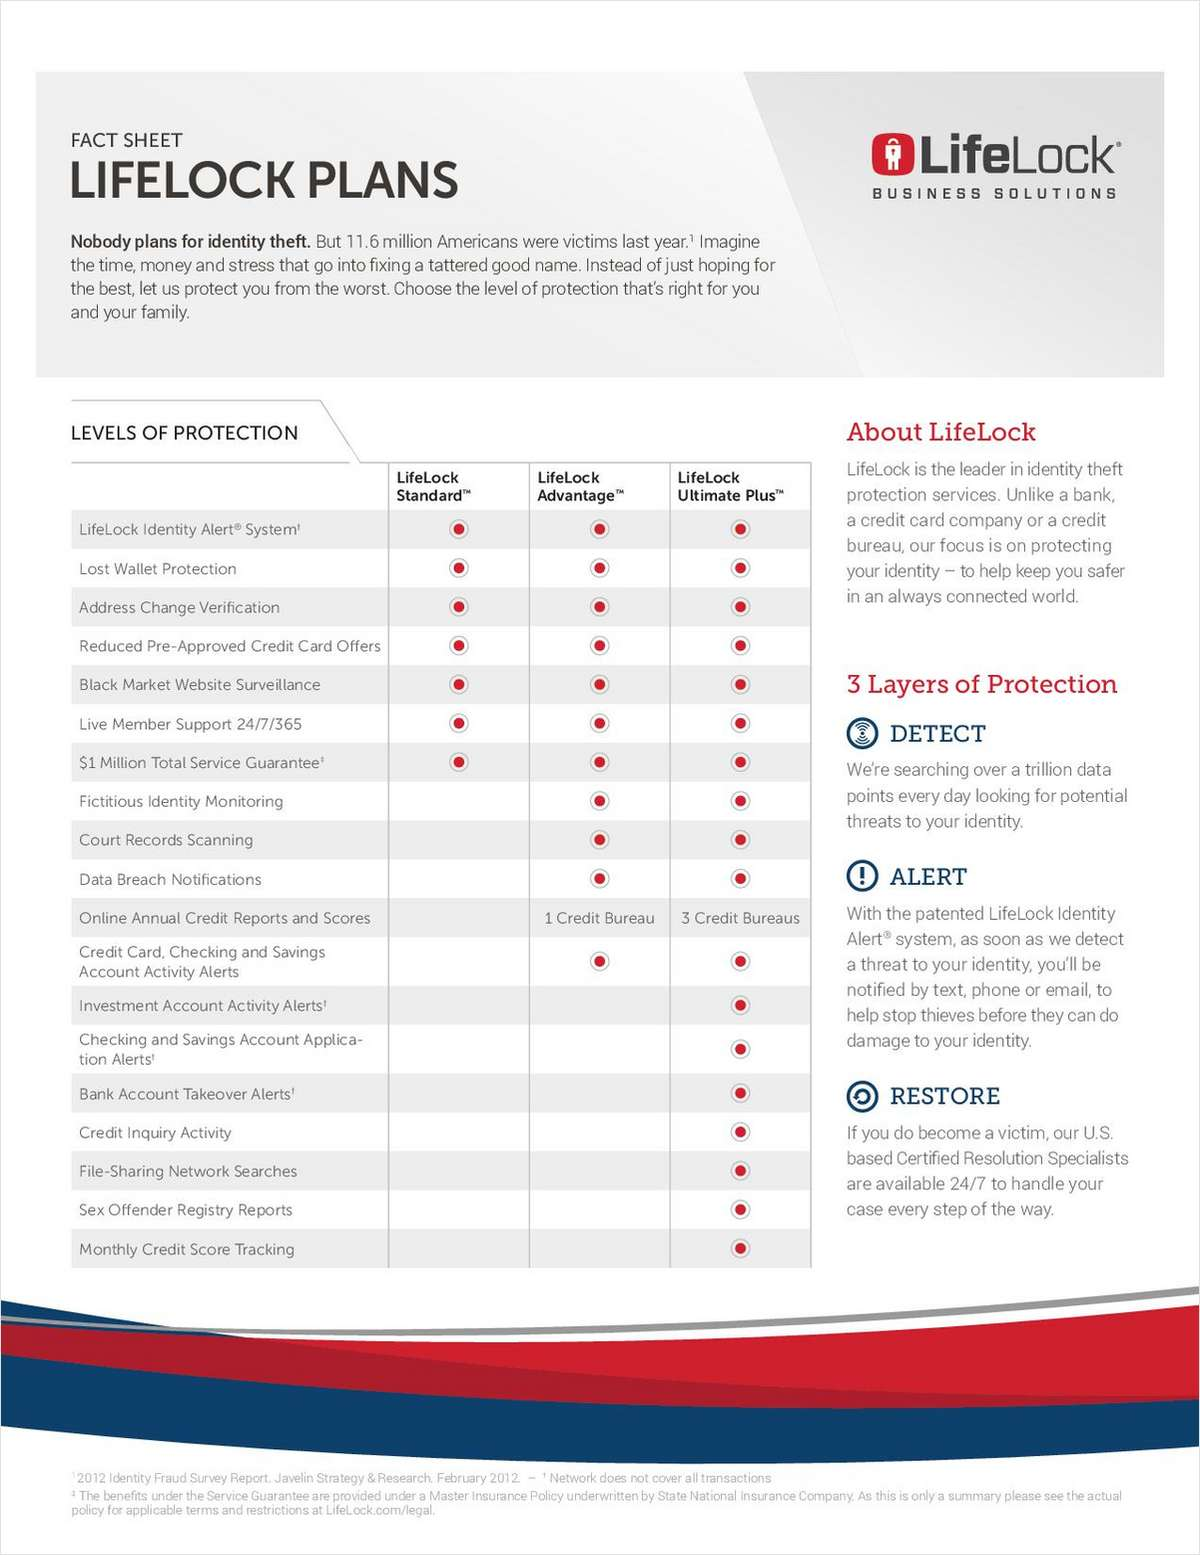 LifeLock Protection Plans Fact Sheet